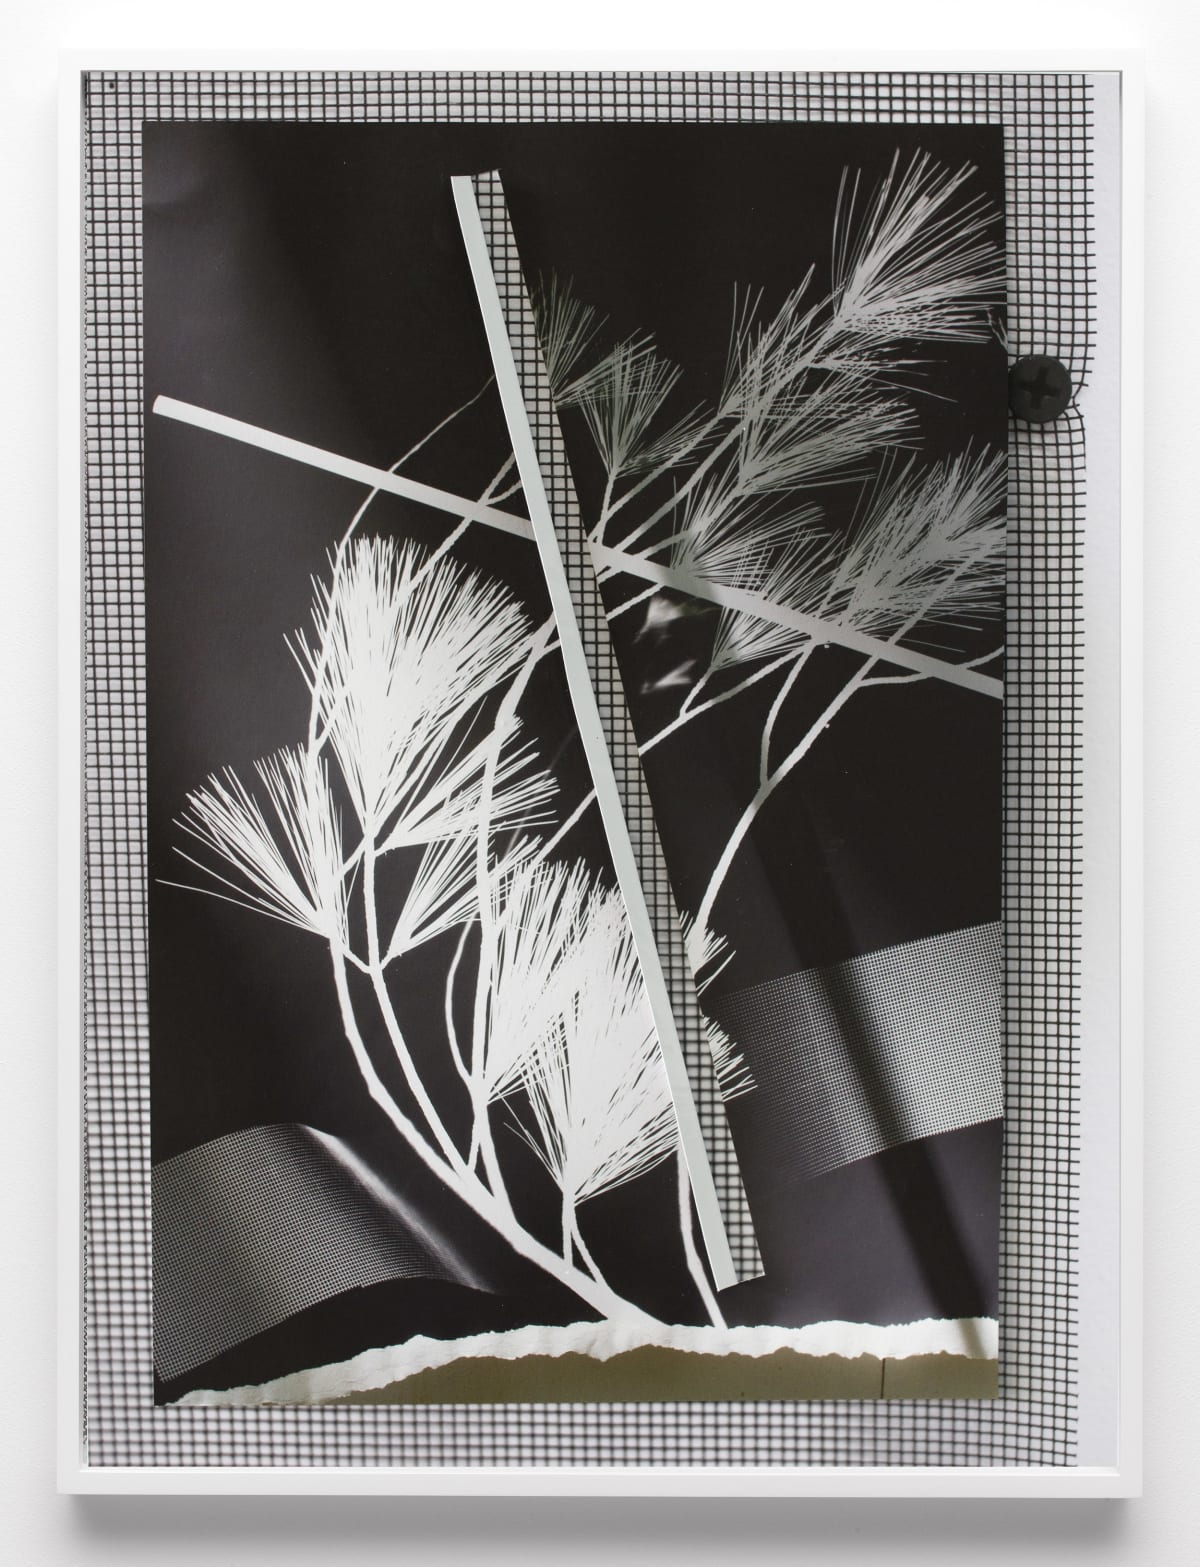 Letha Wilson Re-Photogram New Hampshire New York (Lung Cut Fold)